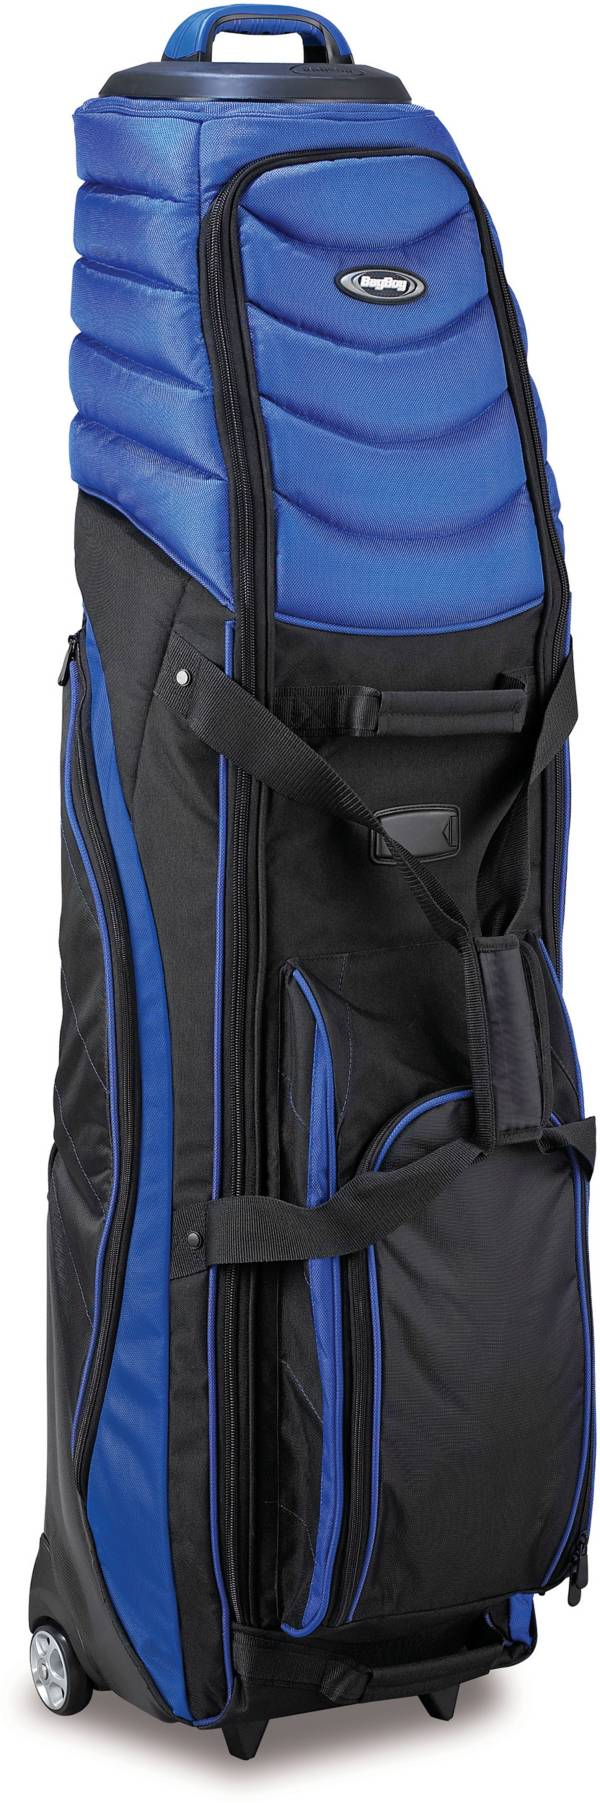 Bag Boy T-2000 Travel Cover product image